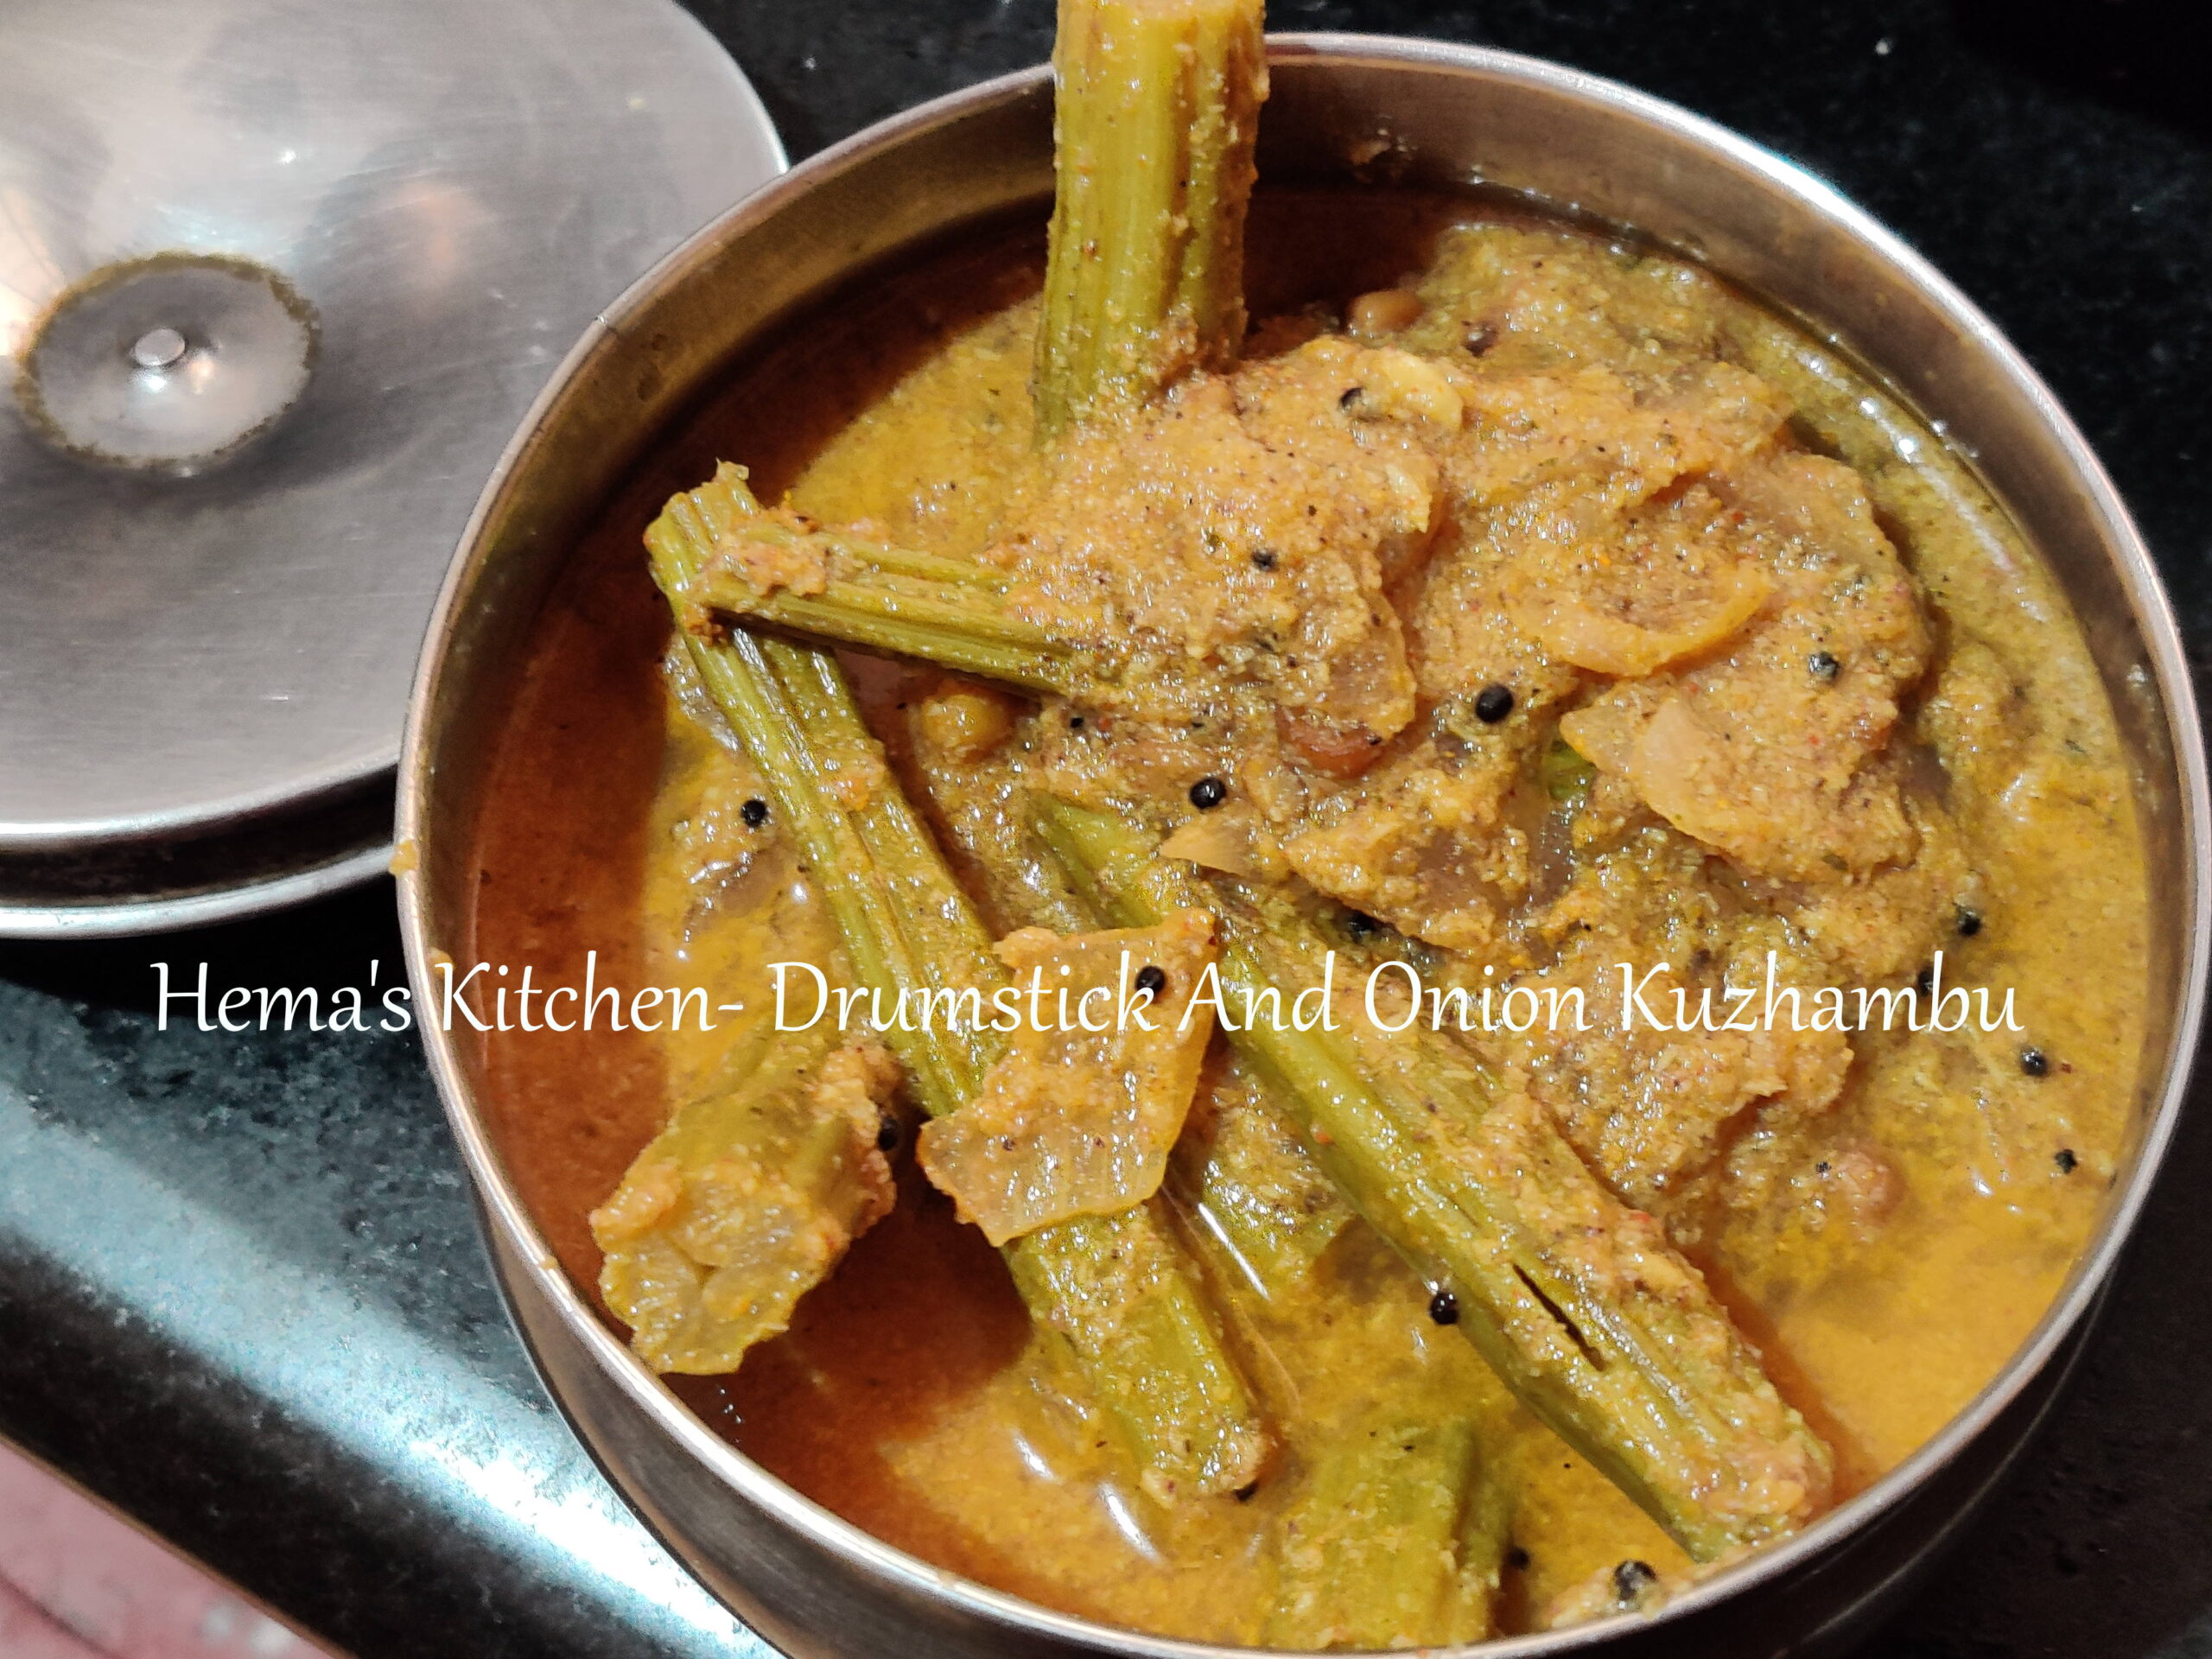 Drumstick and onion kuzhambu